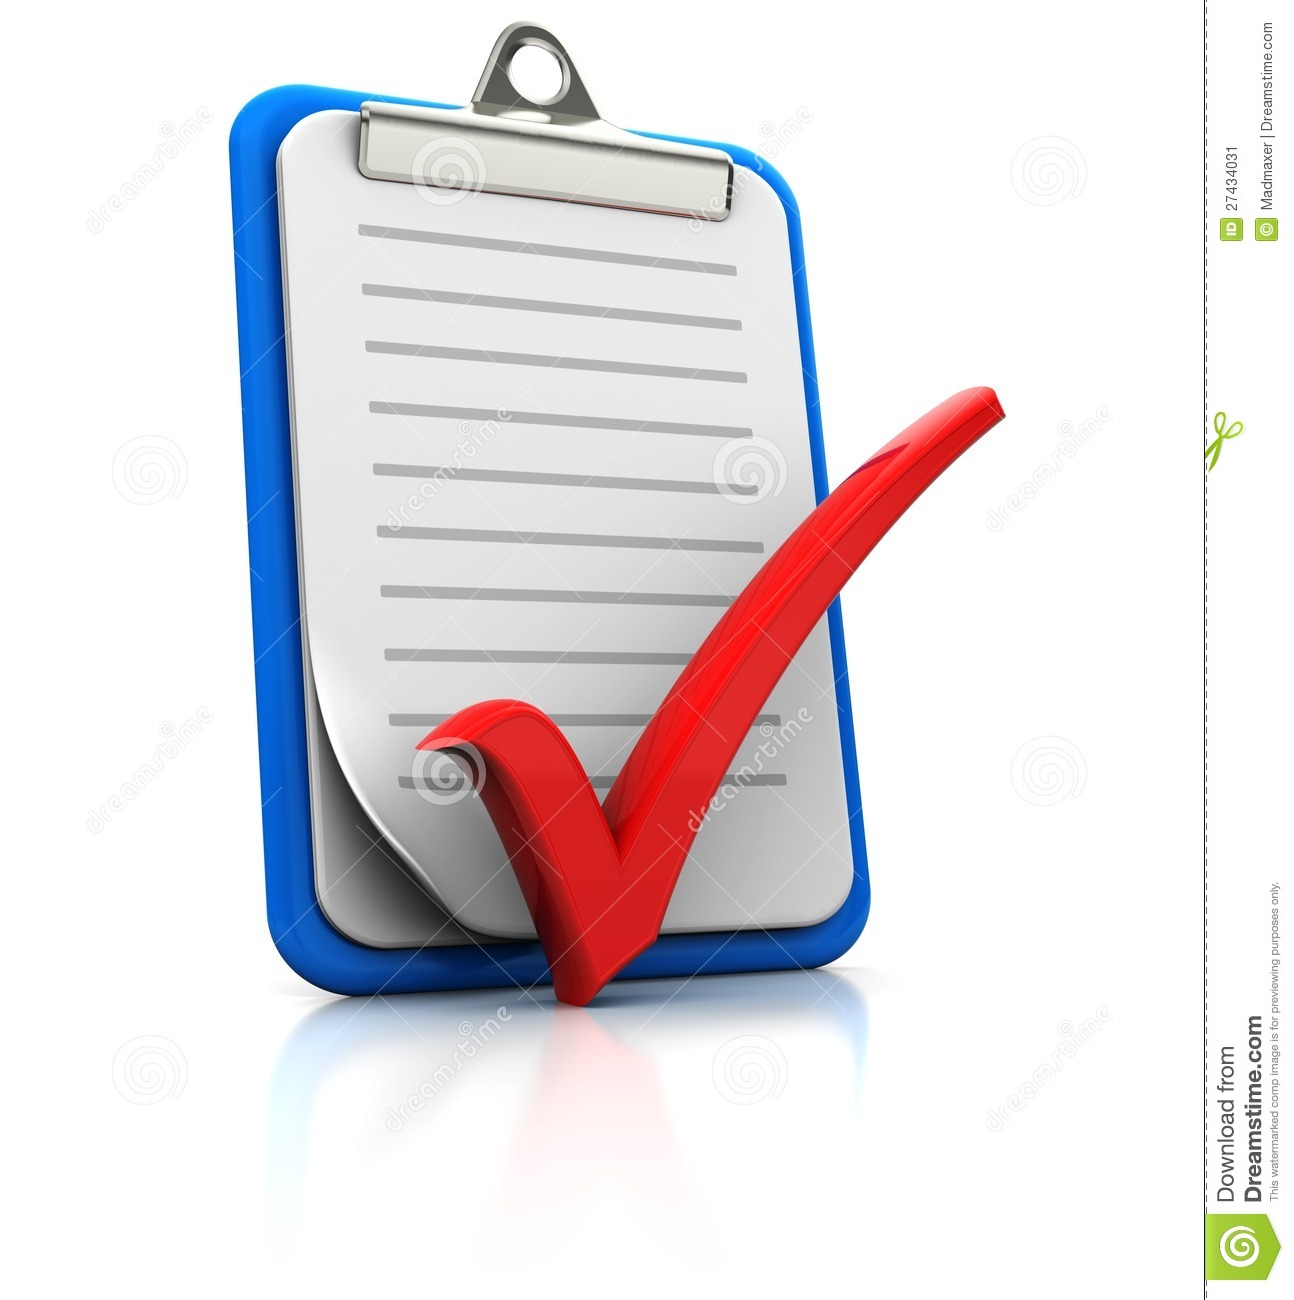 Checkmark Board Clipart Clipboard With Checkmark On